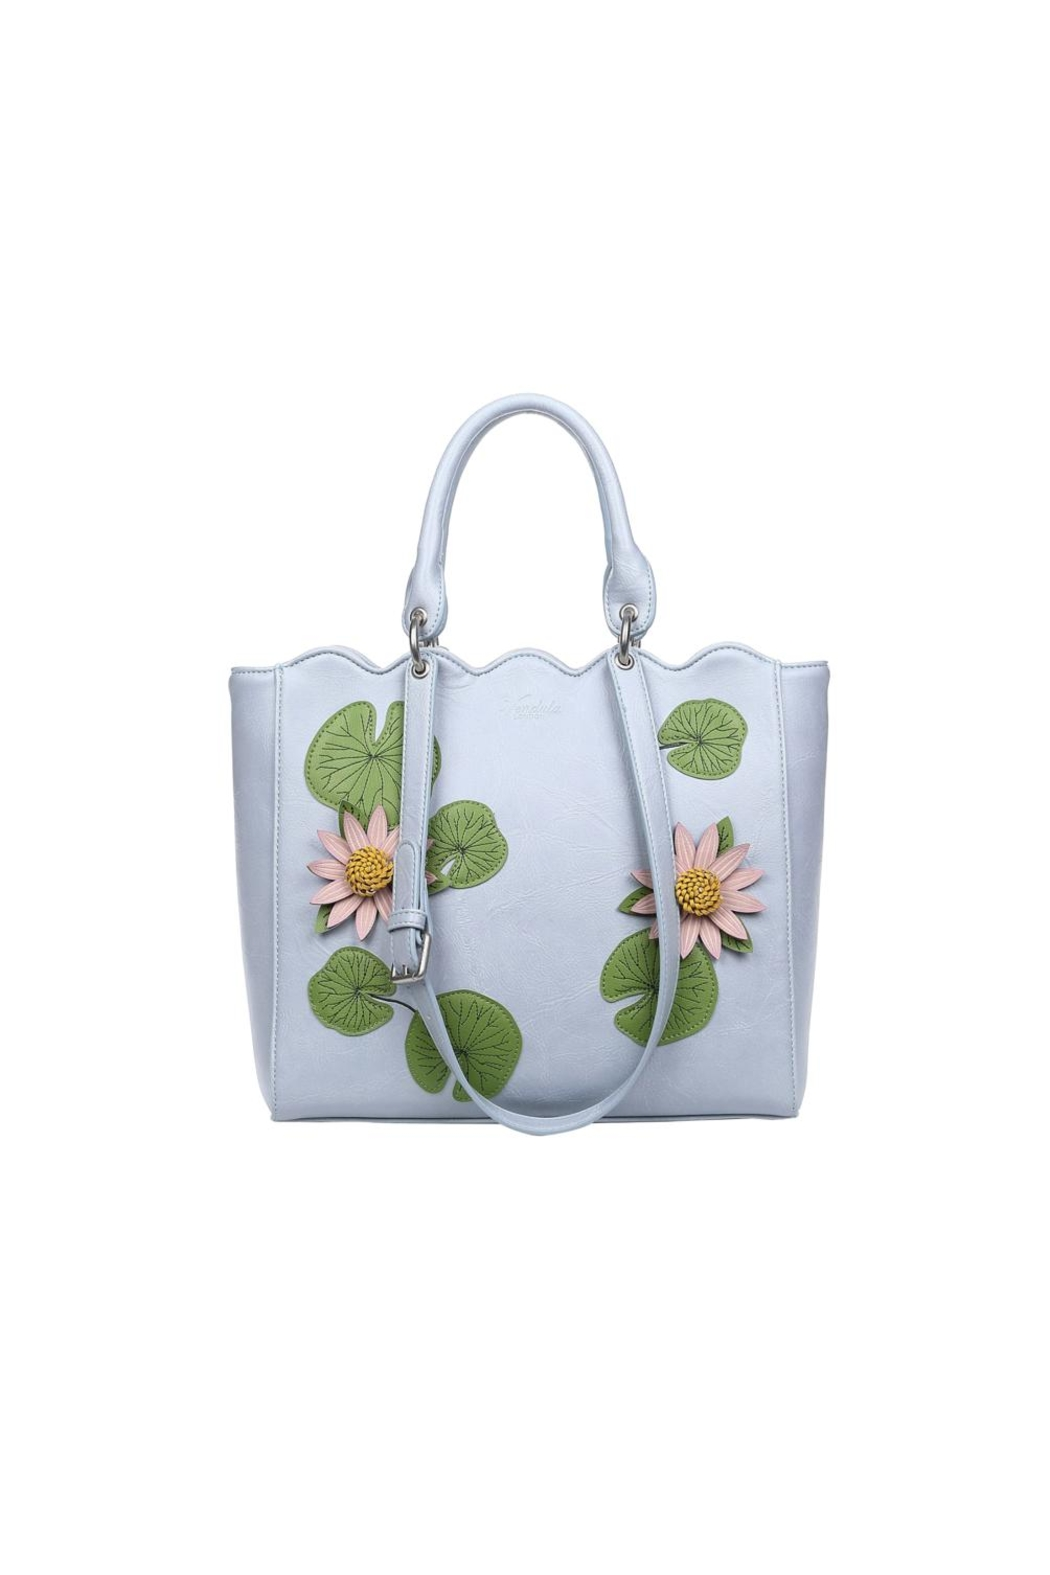 fd82a8f9e79 Vendula London Water-Lily Tote Bag from Florida by Apricot Lane St ...